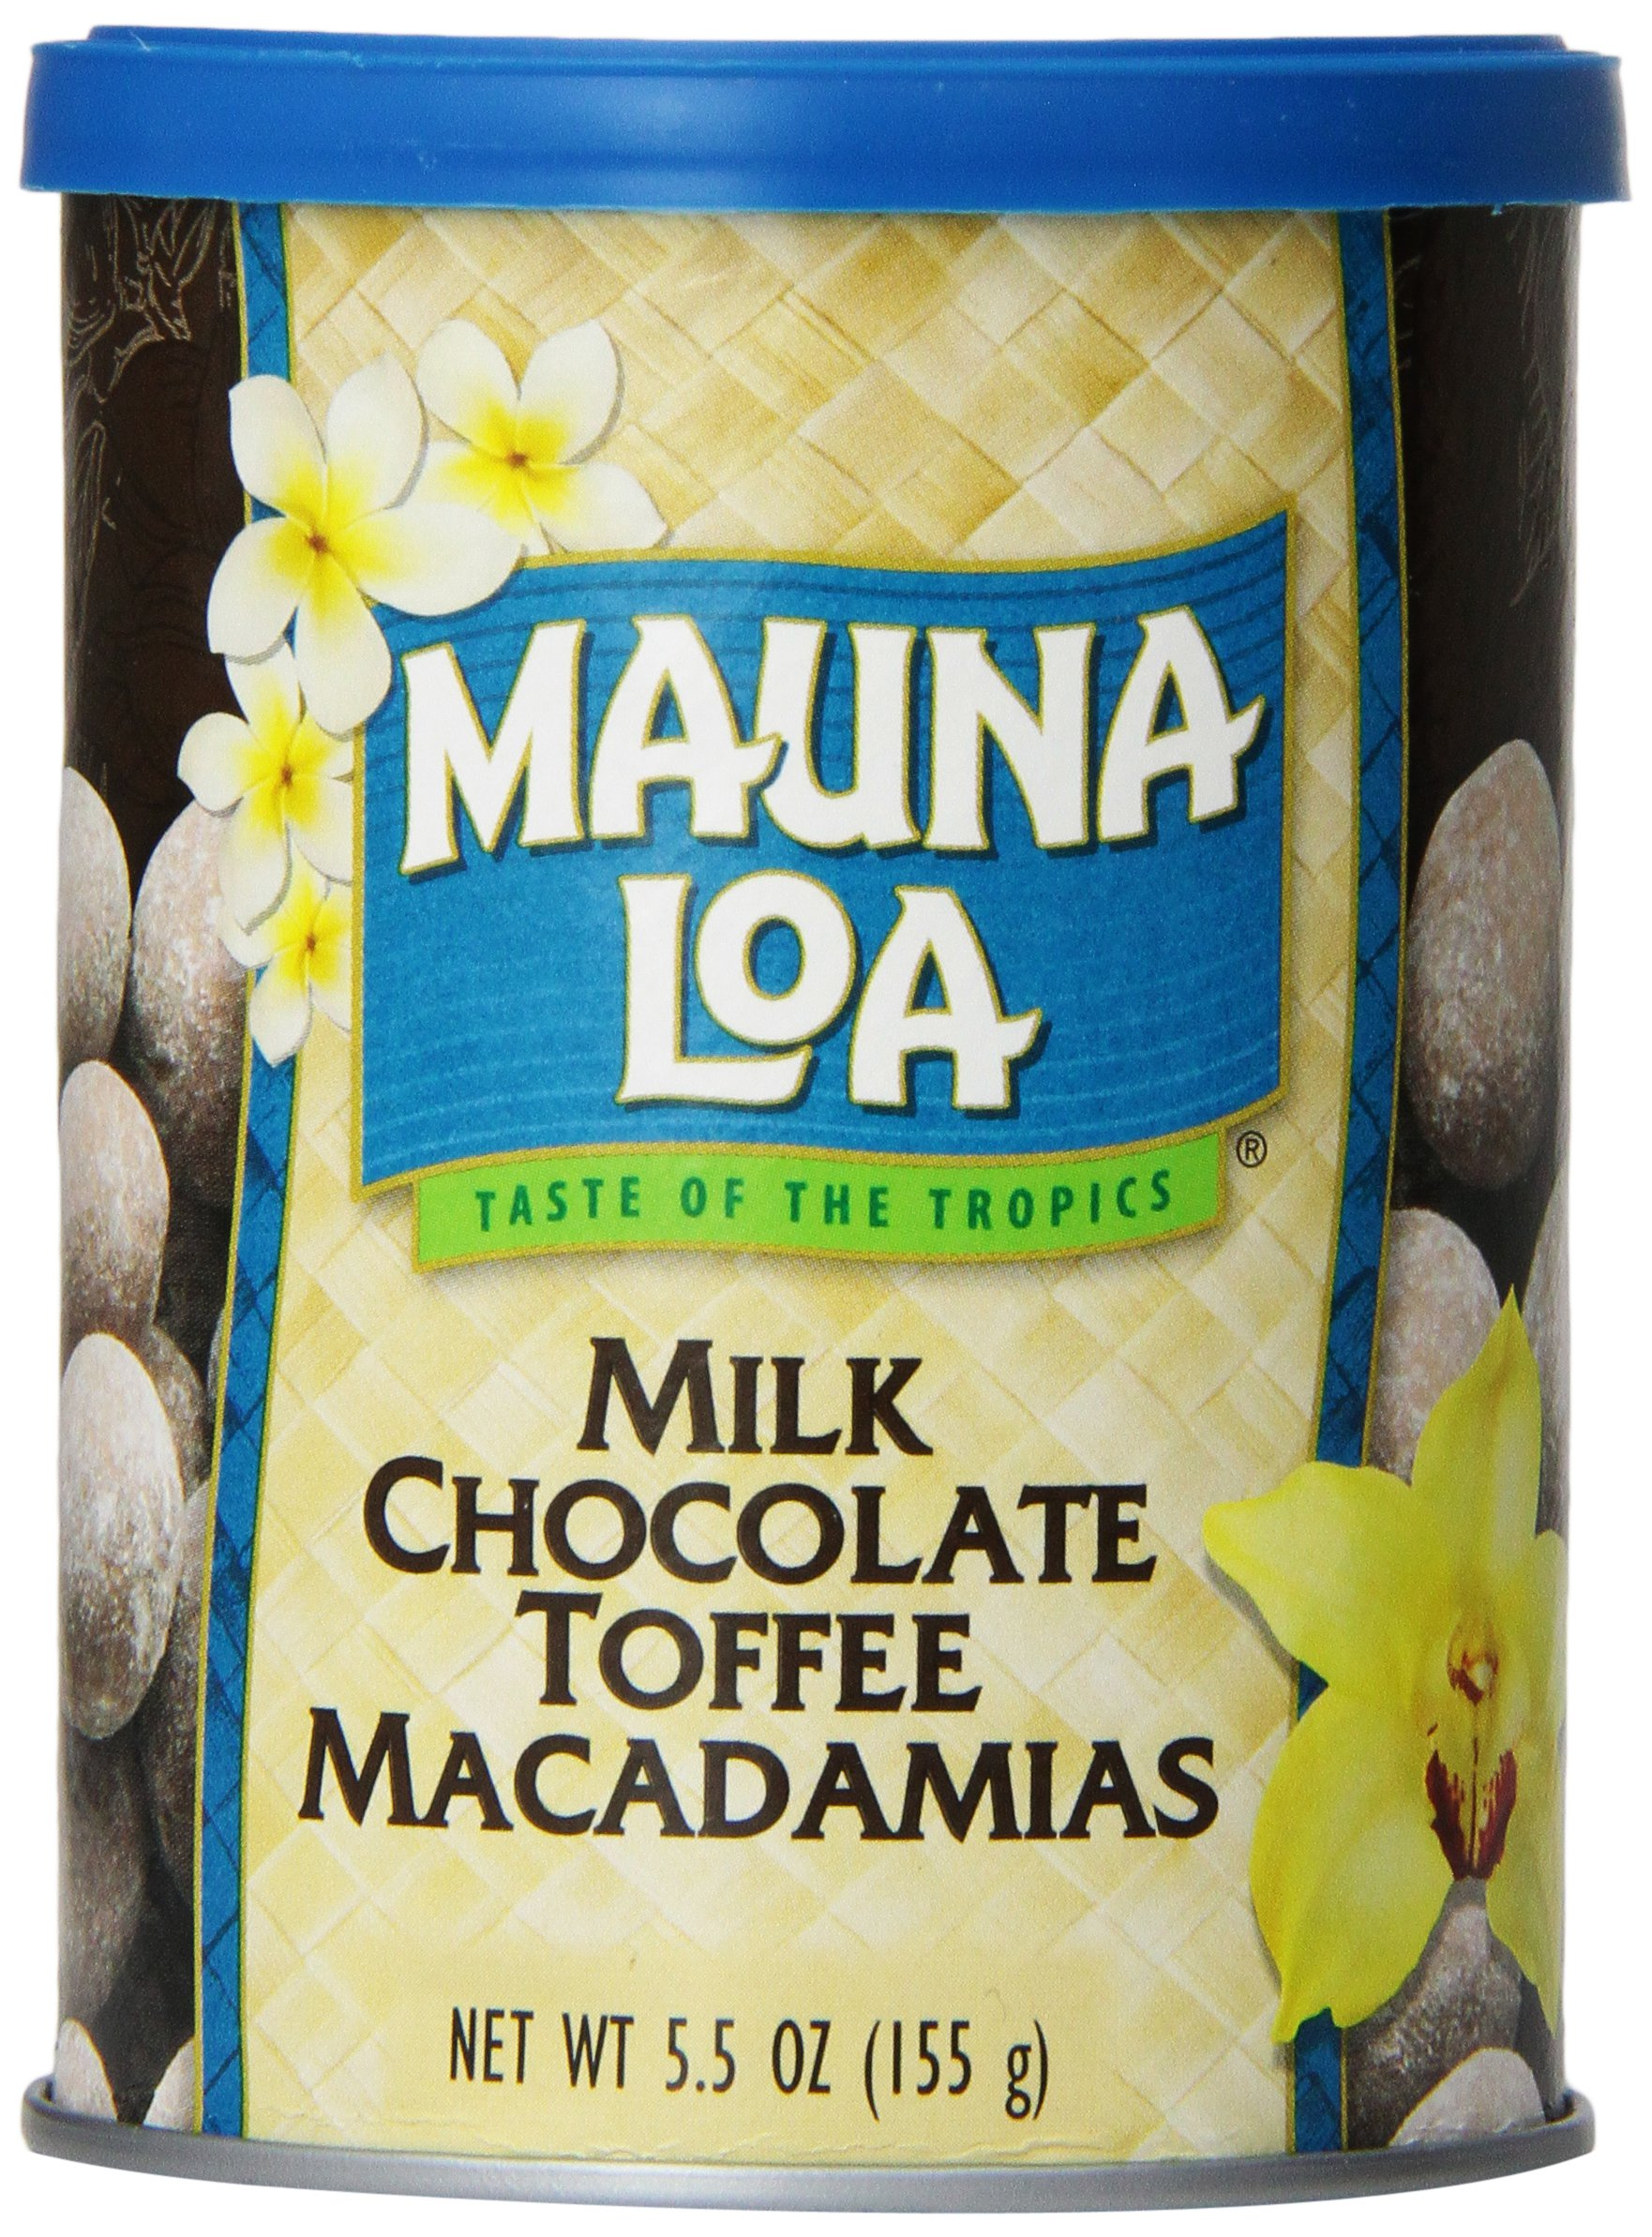 Mauna Loa Macadamias, Milk Chocolate Toffee, 5.5-Ounce Canisters (Pack of 6)